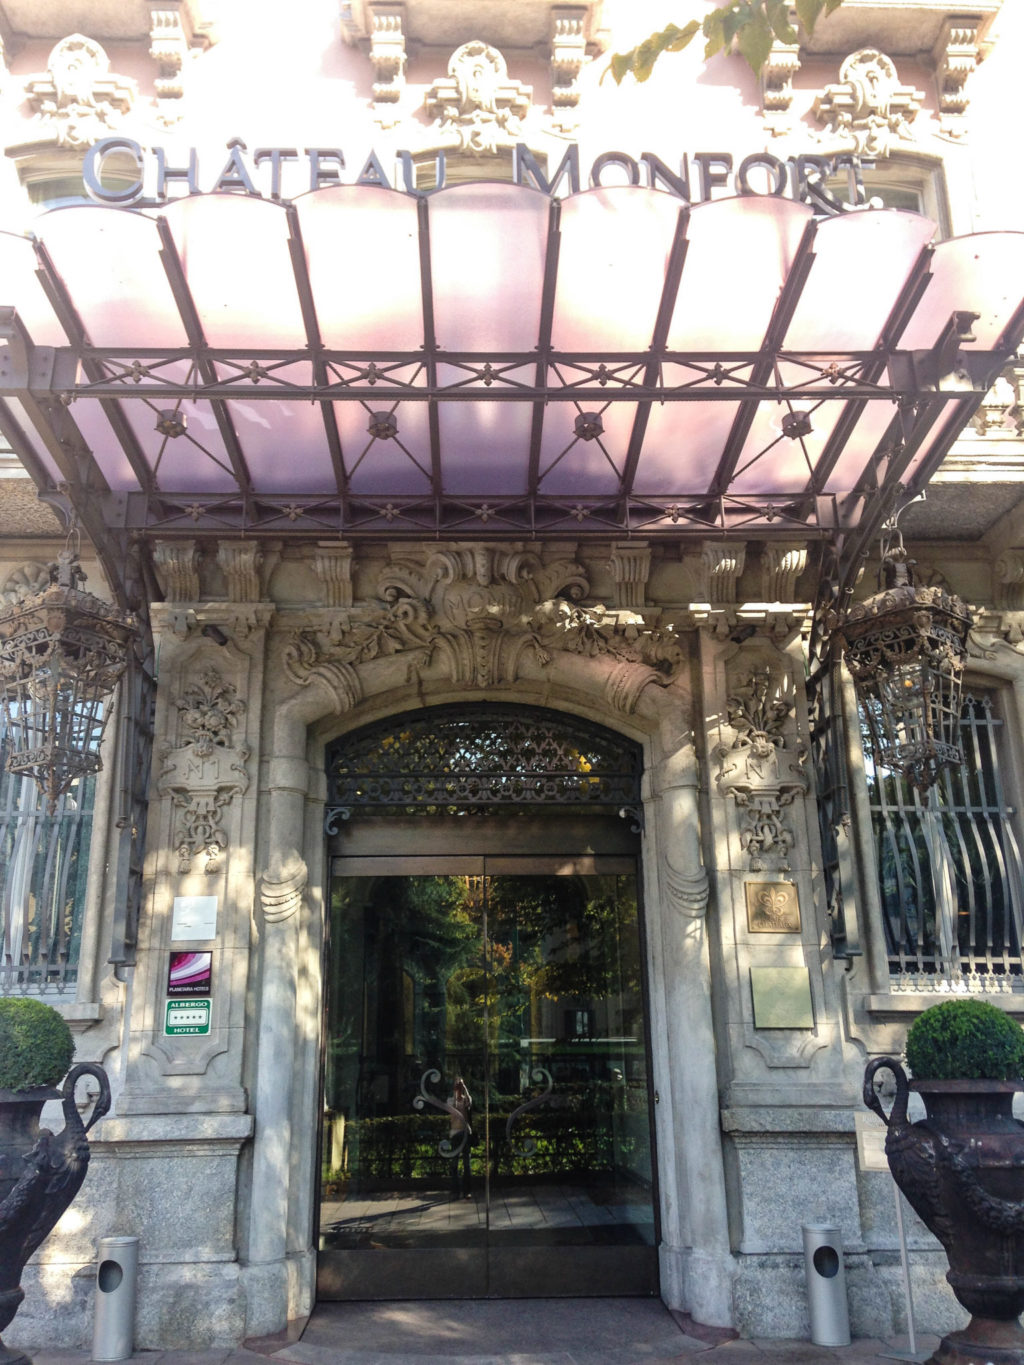 Château Monfort in Milan, Italy. Photo by Gloria J. Chang.